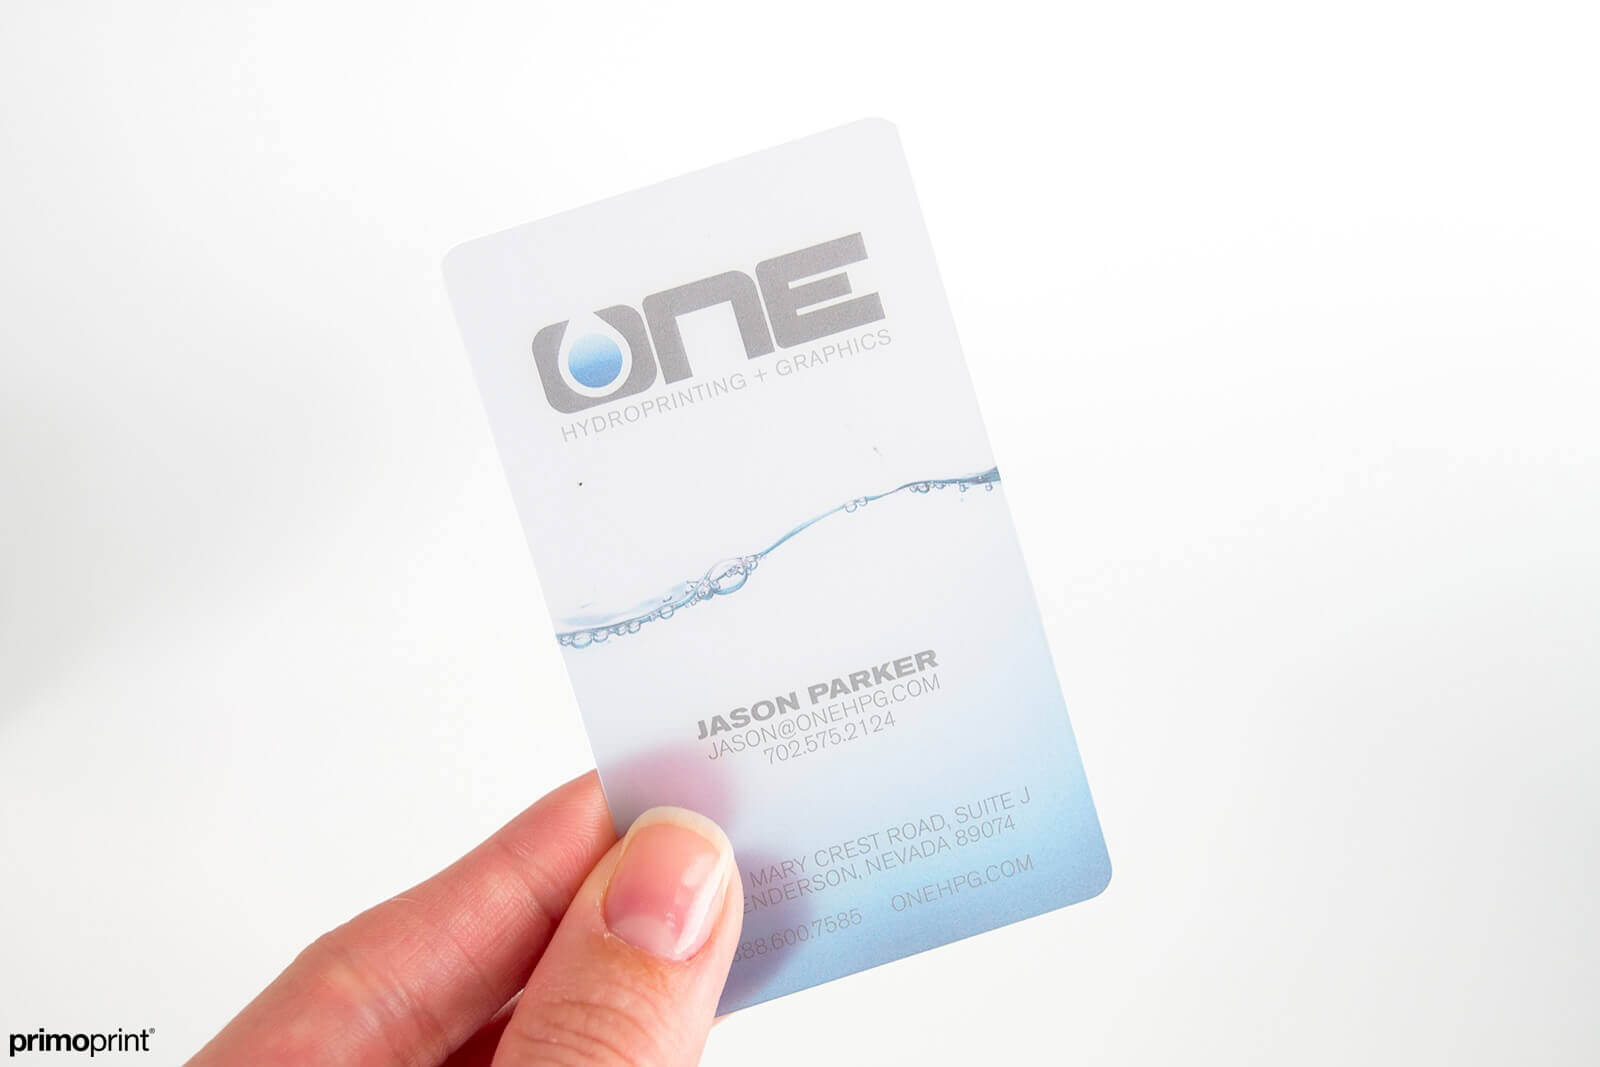 20PT frosted plastic business card. Printed in USA.